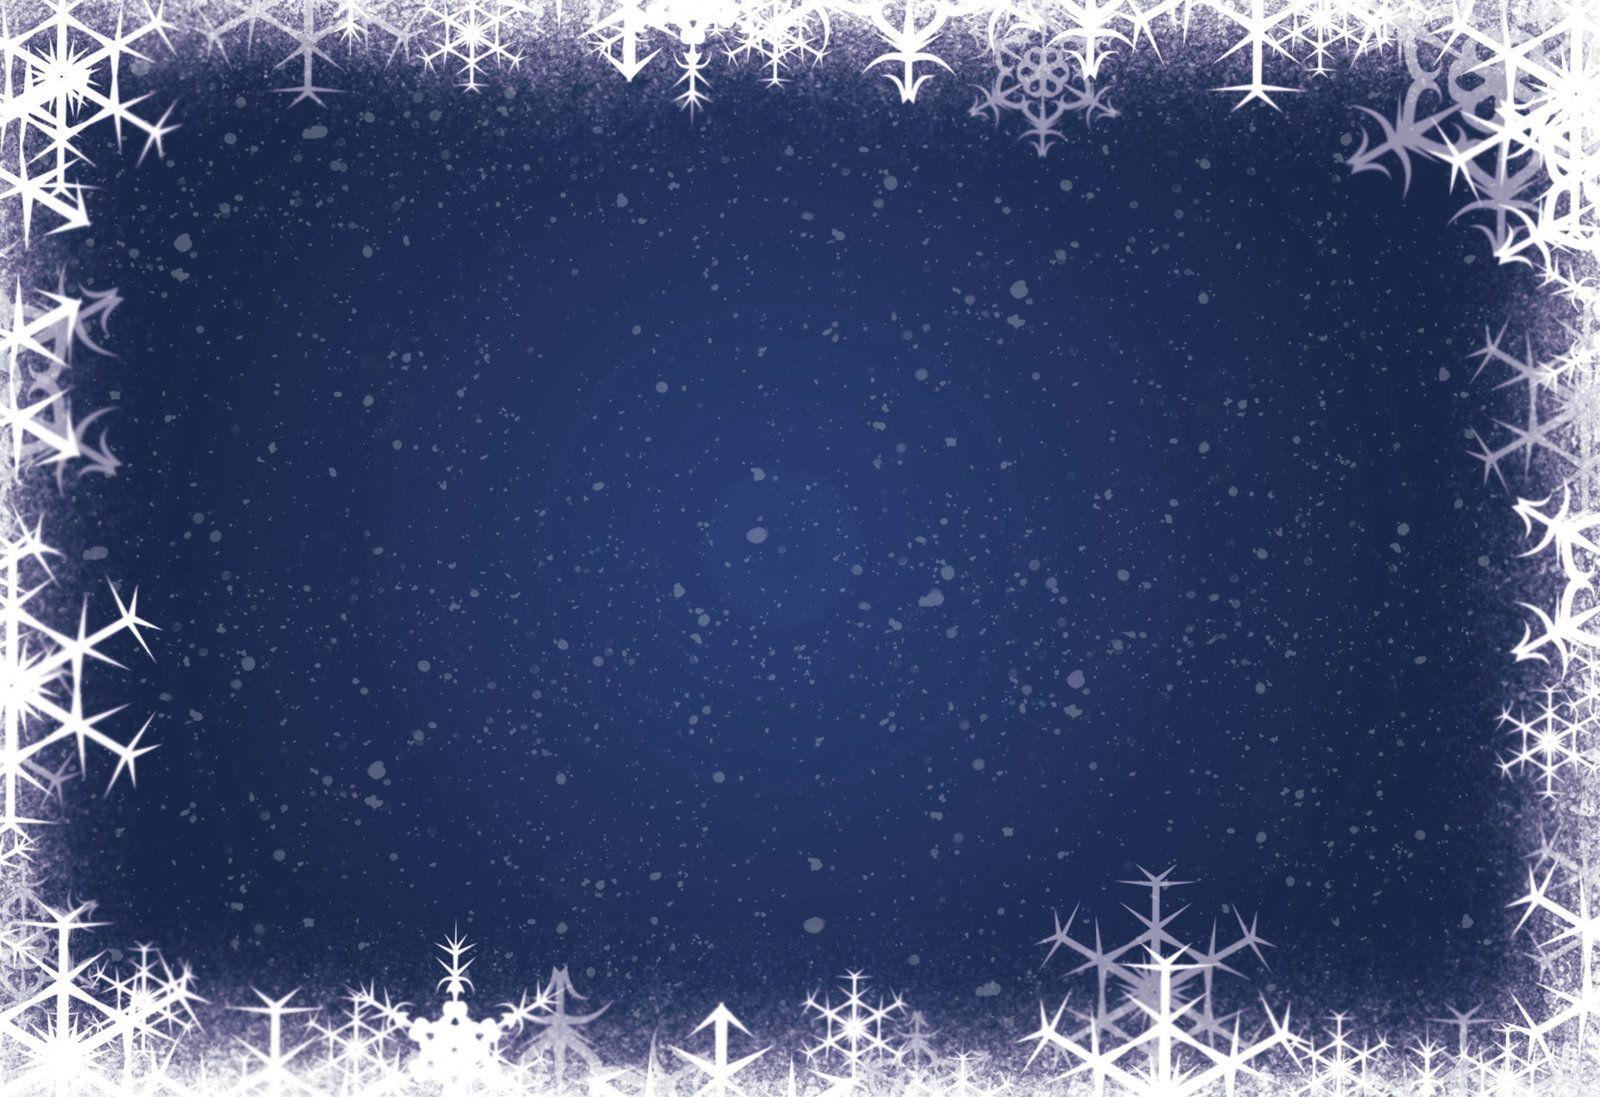 real snowflakes background - photo #26